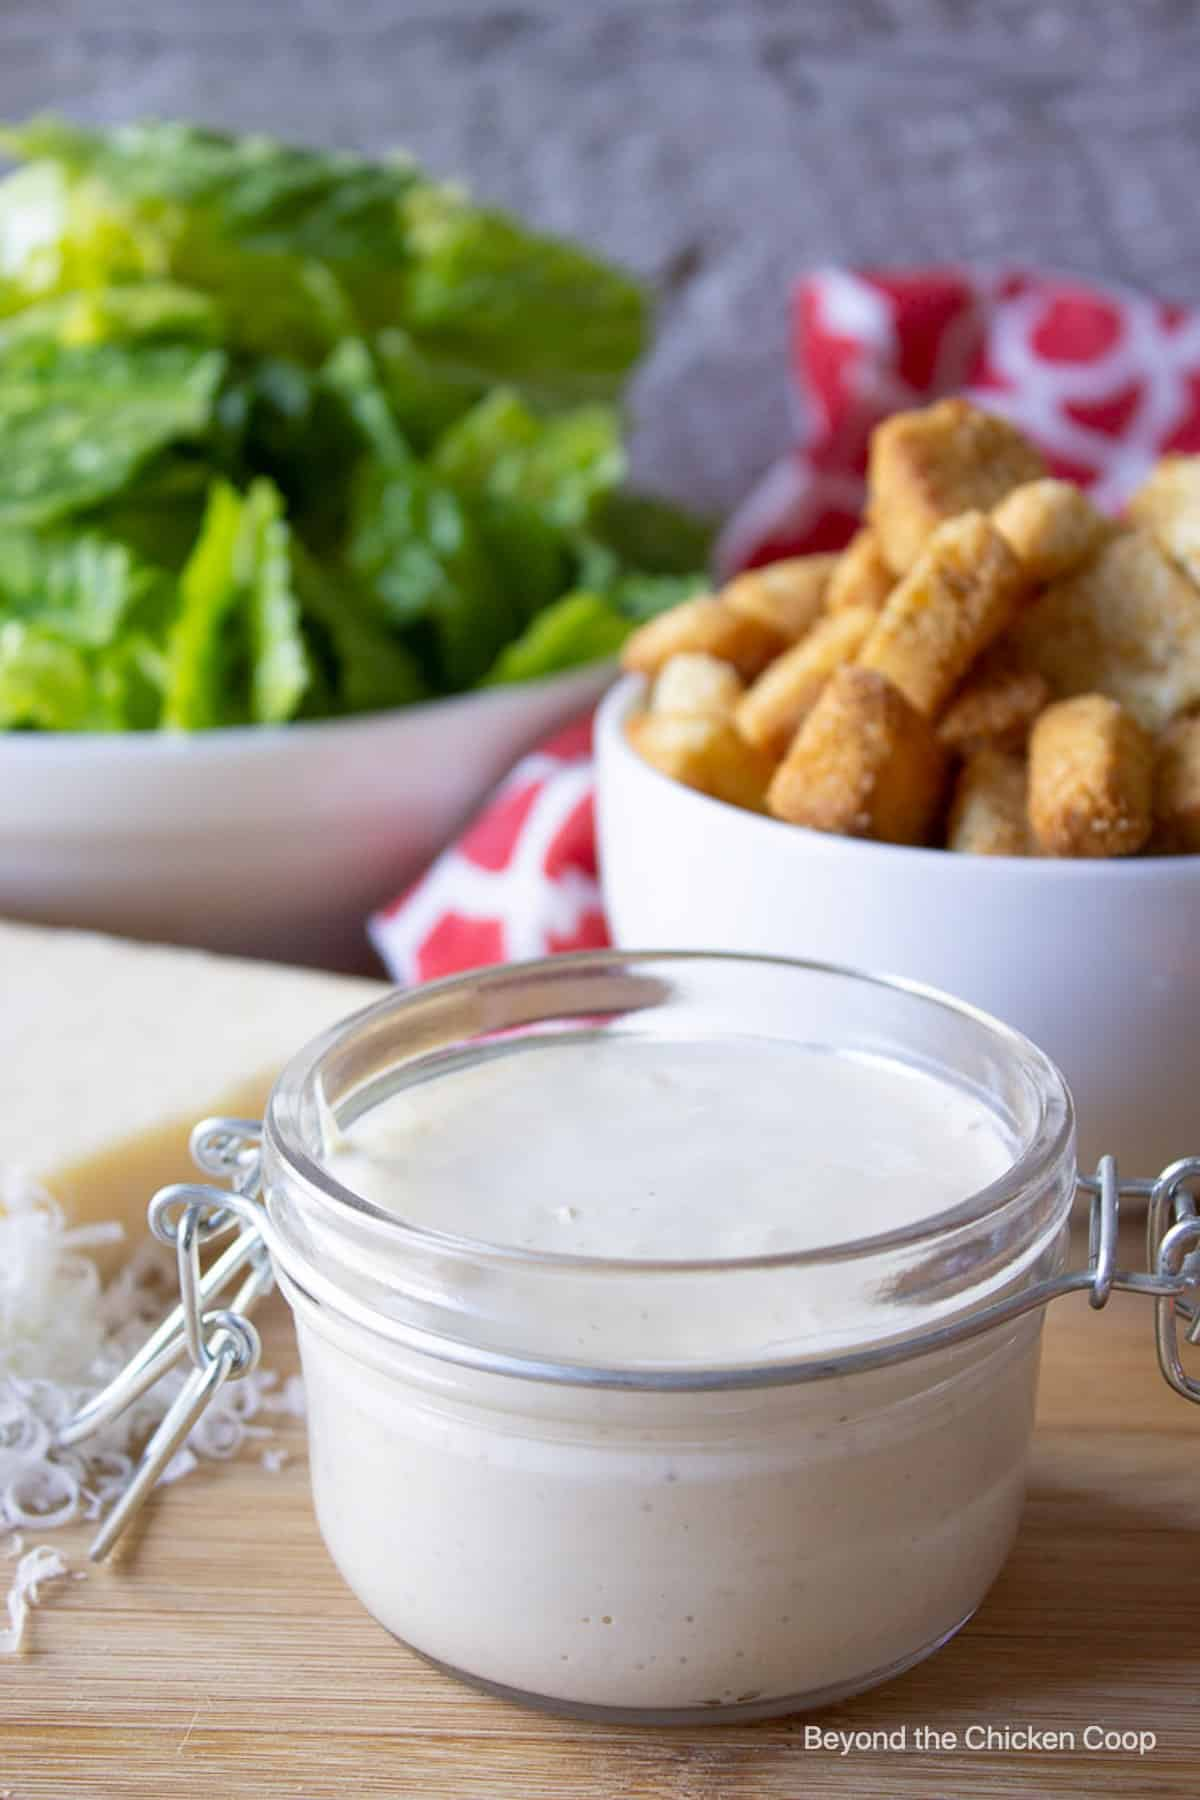 A jar filled with a creamy dressing with salad ingredients in the background